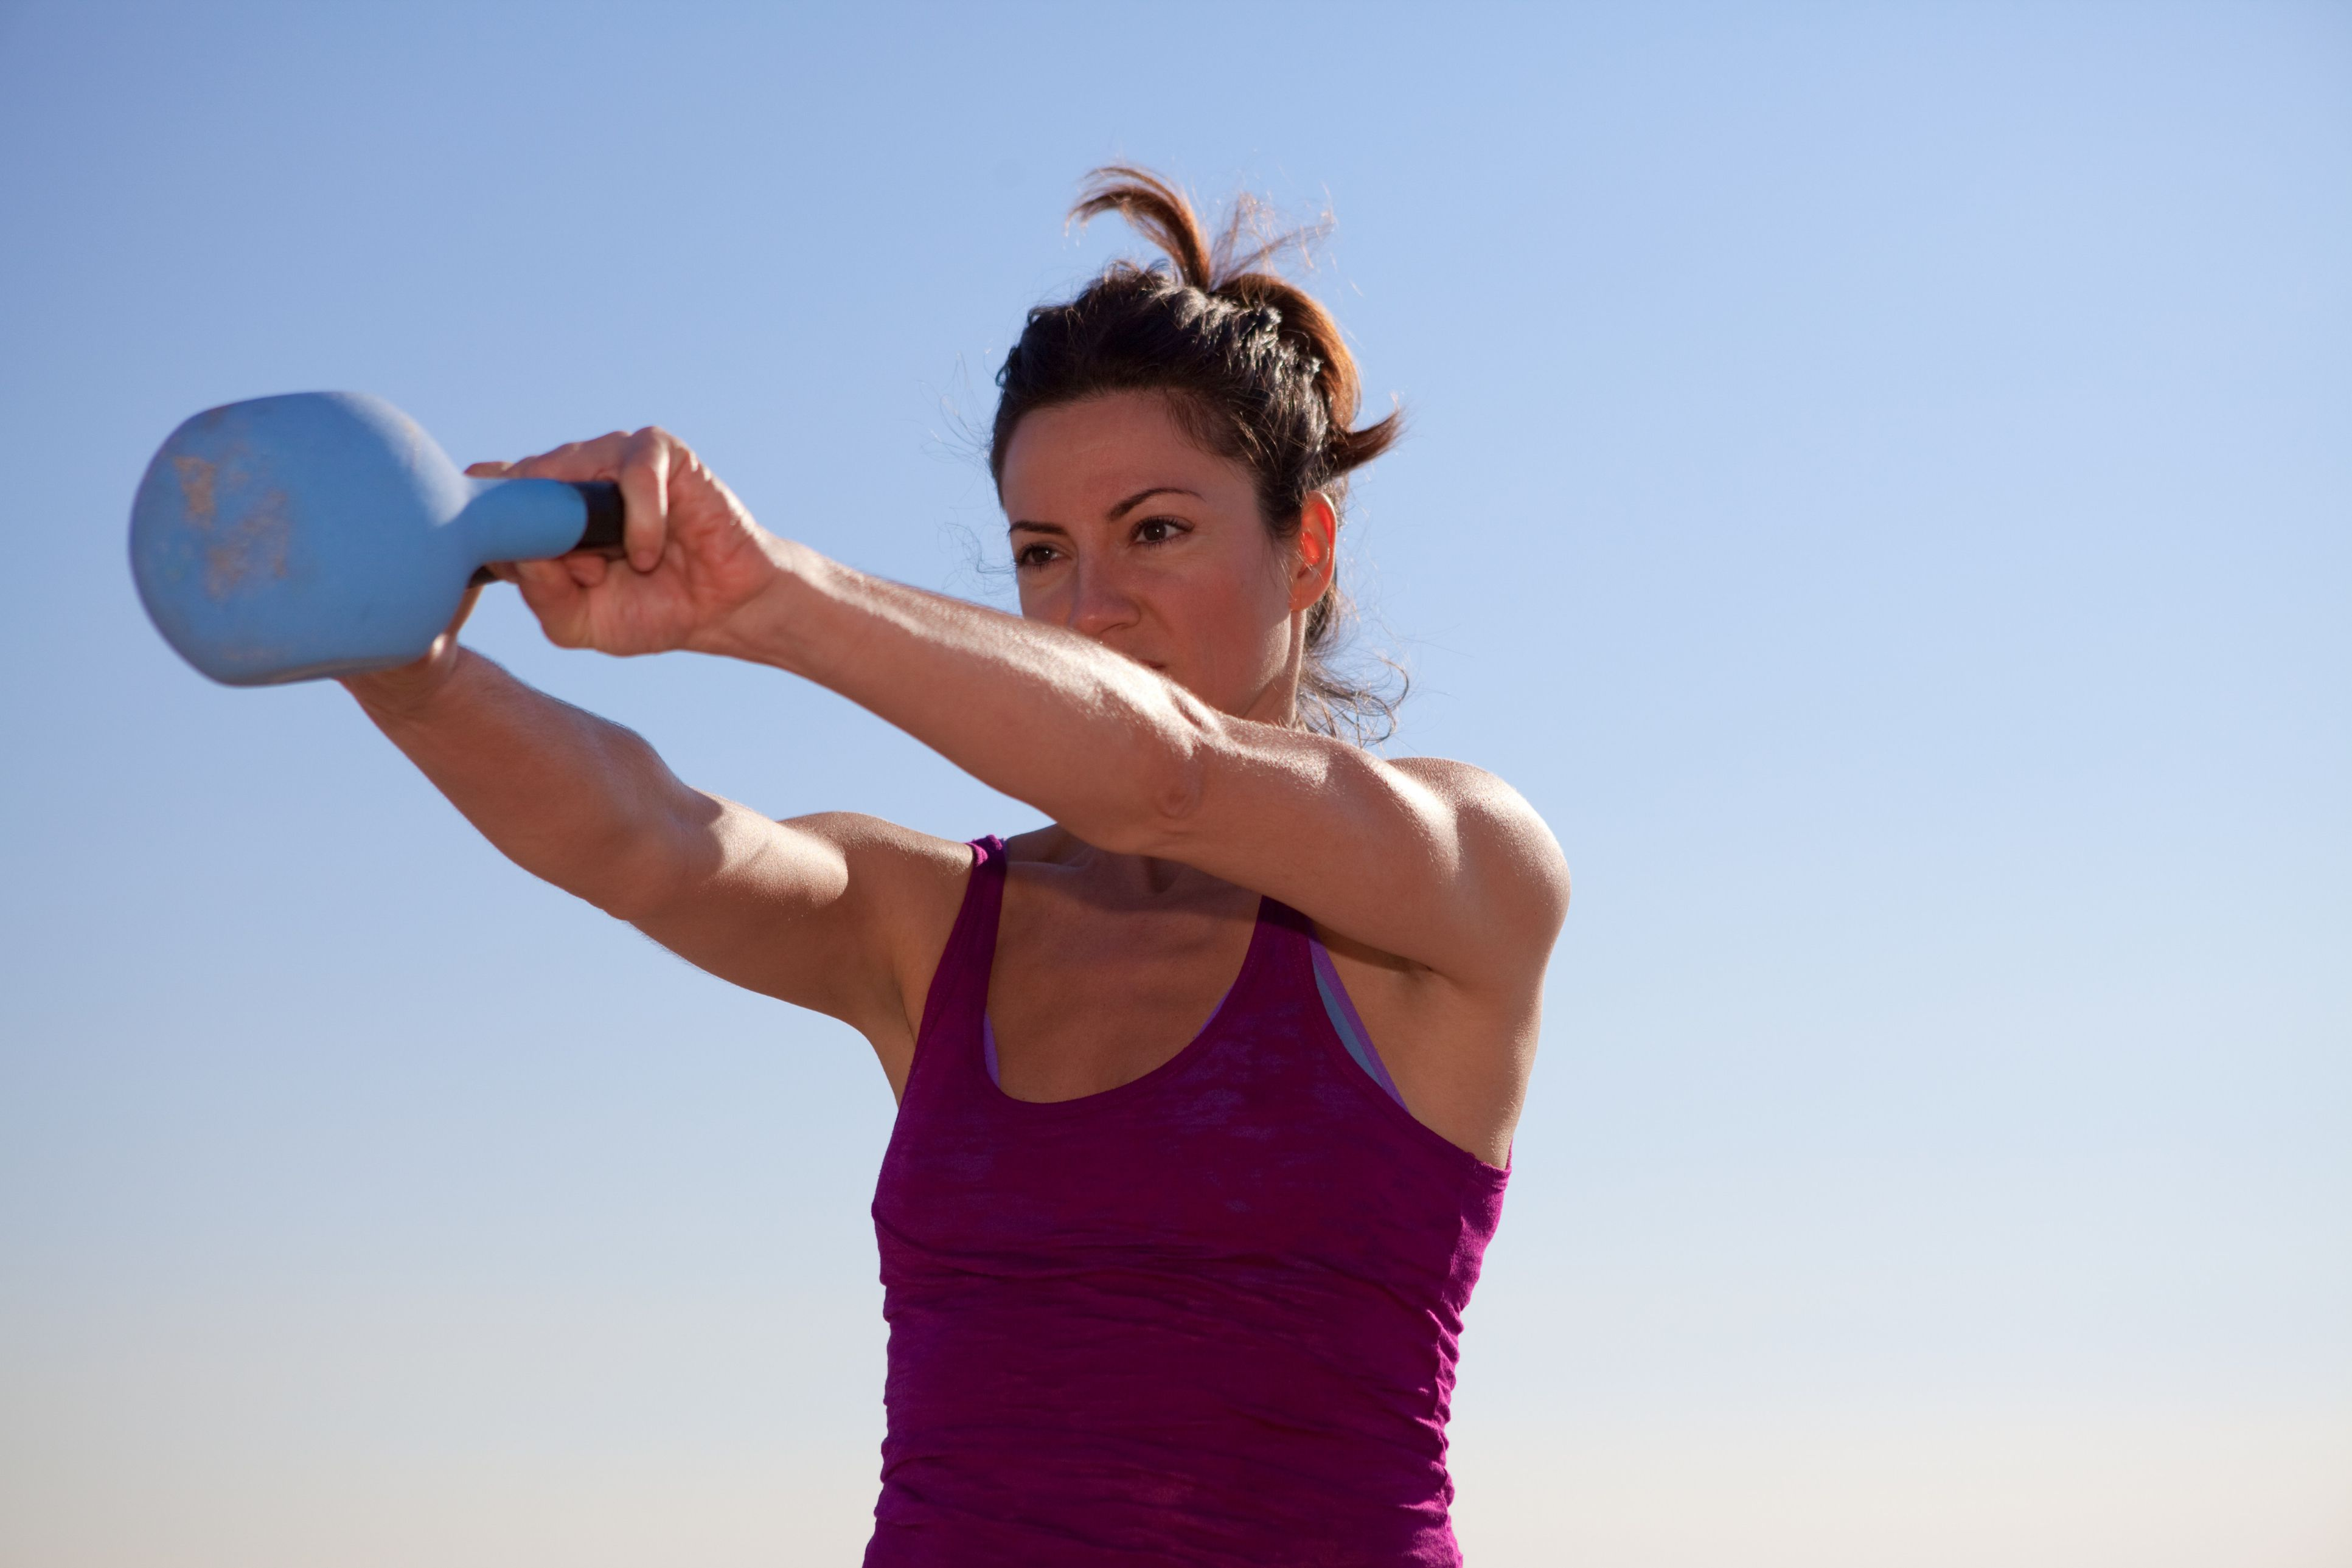 Pick up Your Kettlebell for a Fun Workout